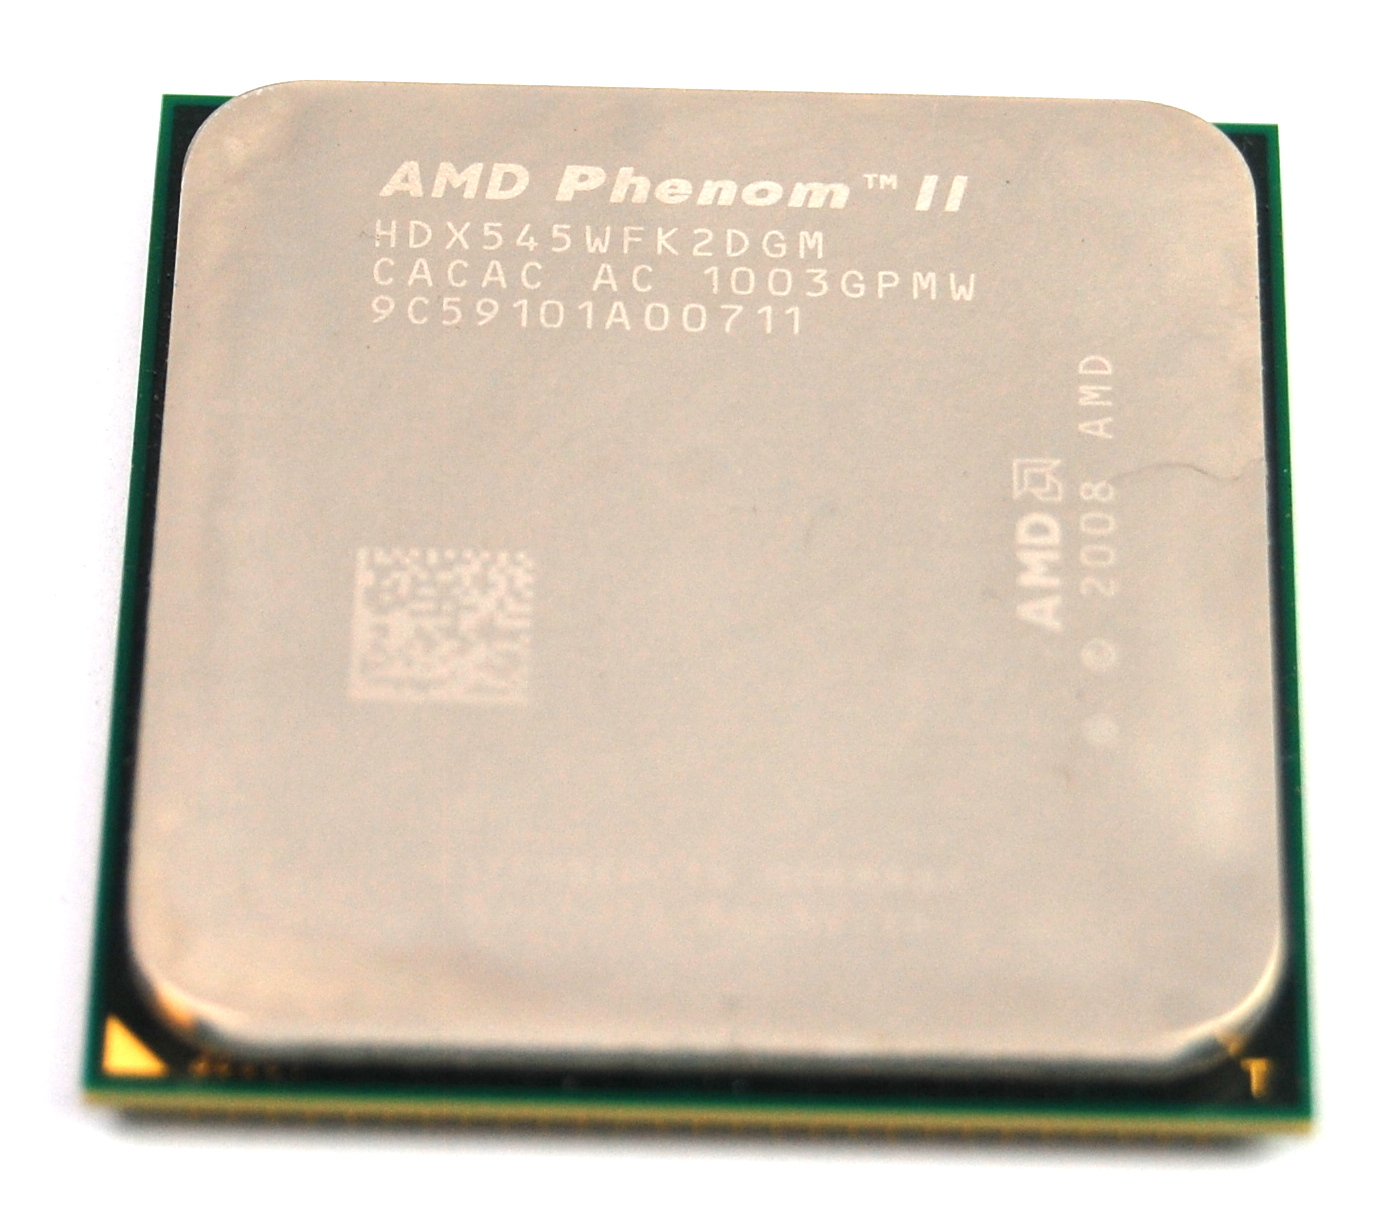 AMD HDX545WFK2DGM Phenom II X2 3Ghz Socket AM2+/AM3 Processor